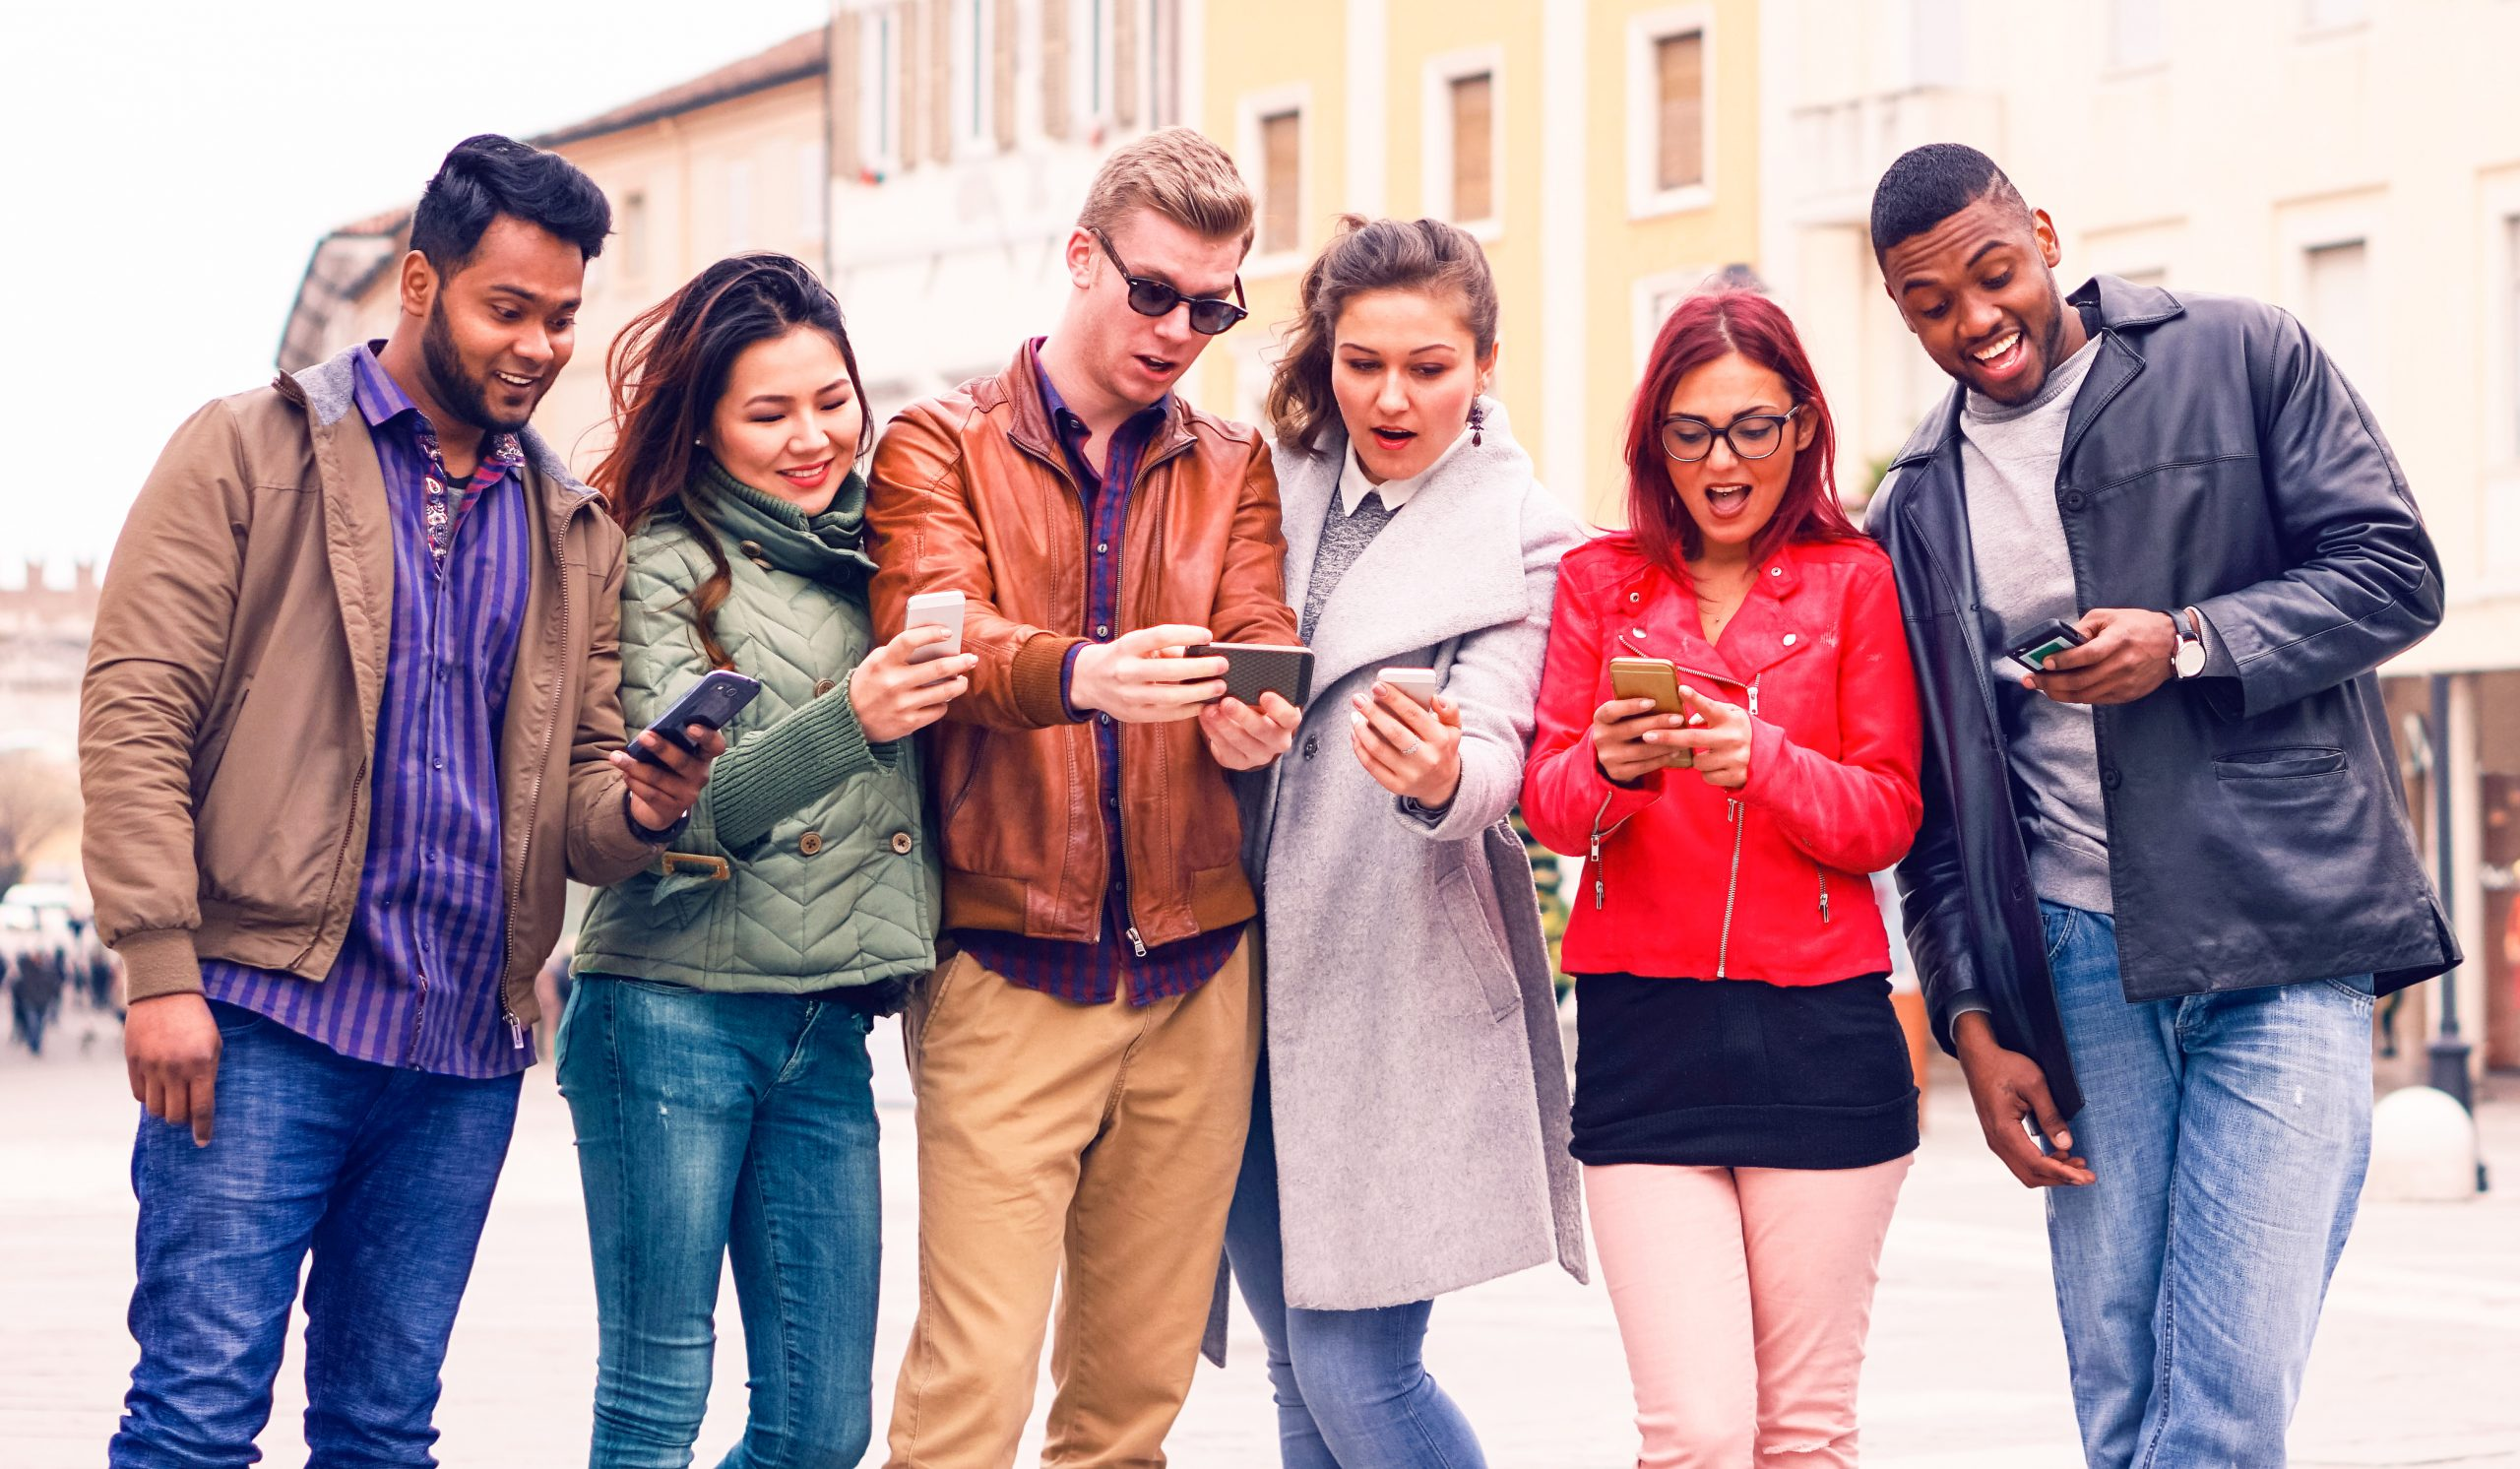 How Has Mobile Changed the Customer Engagement Game?